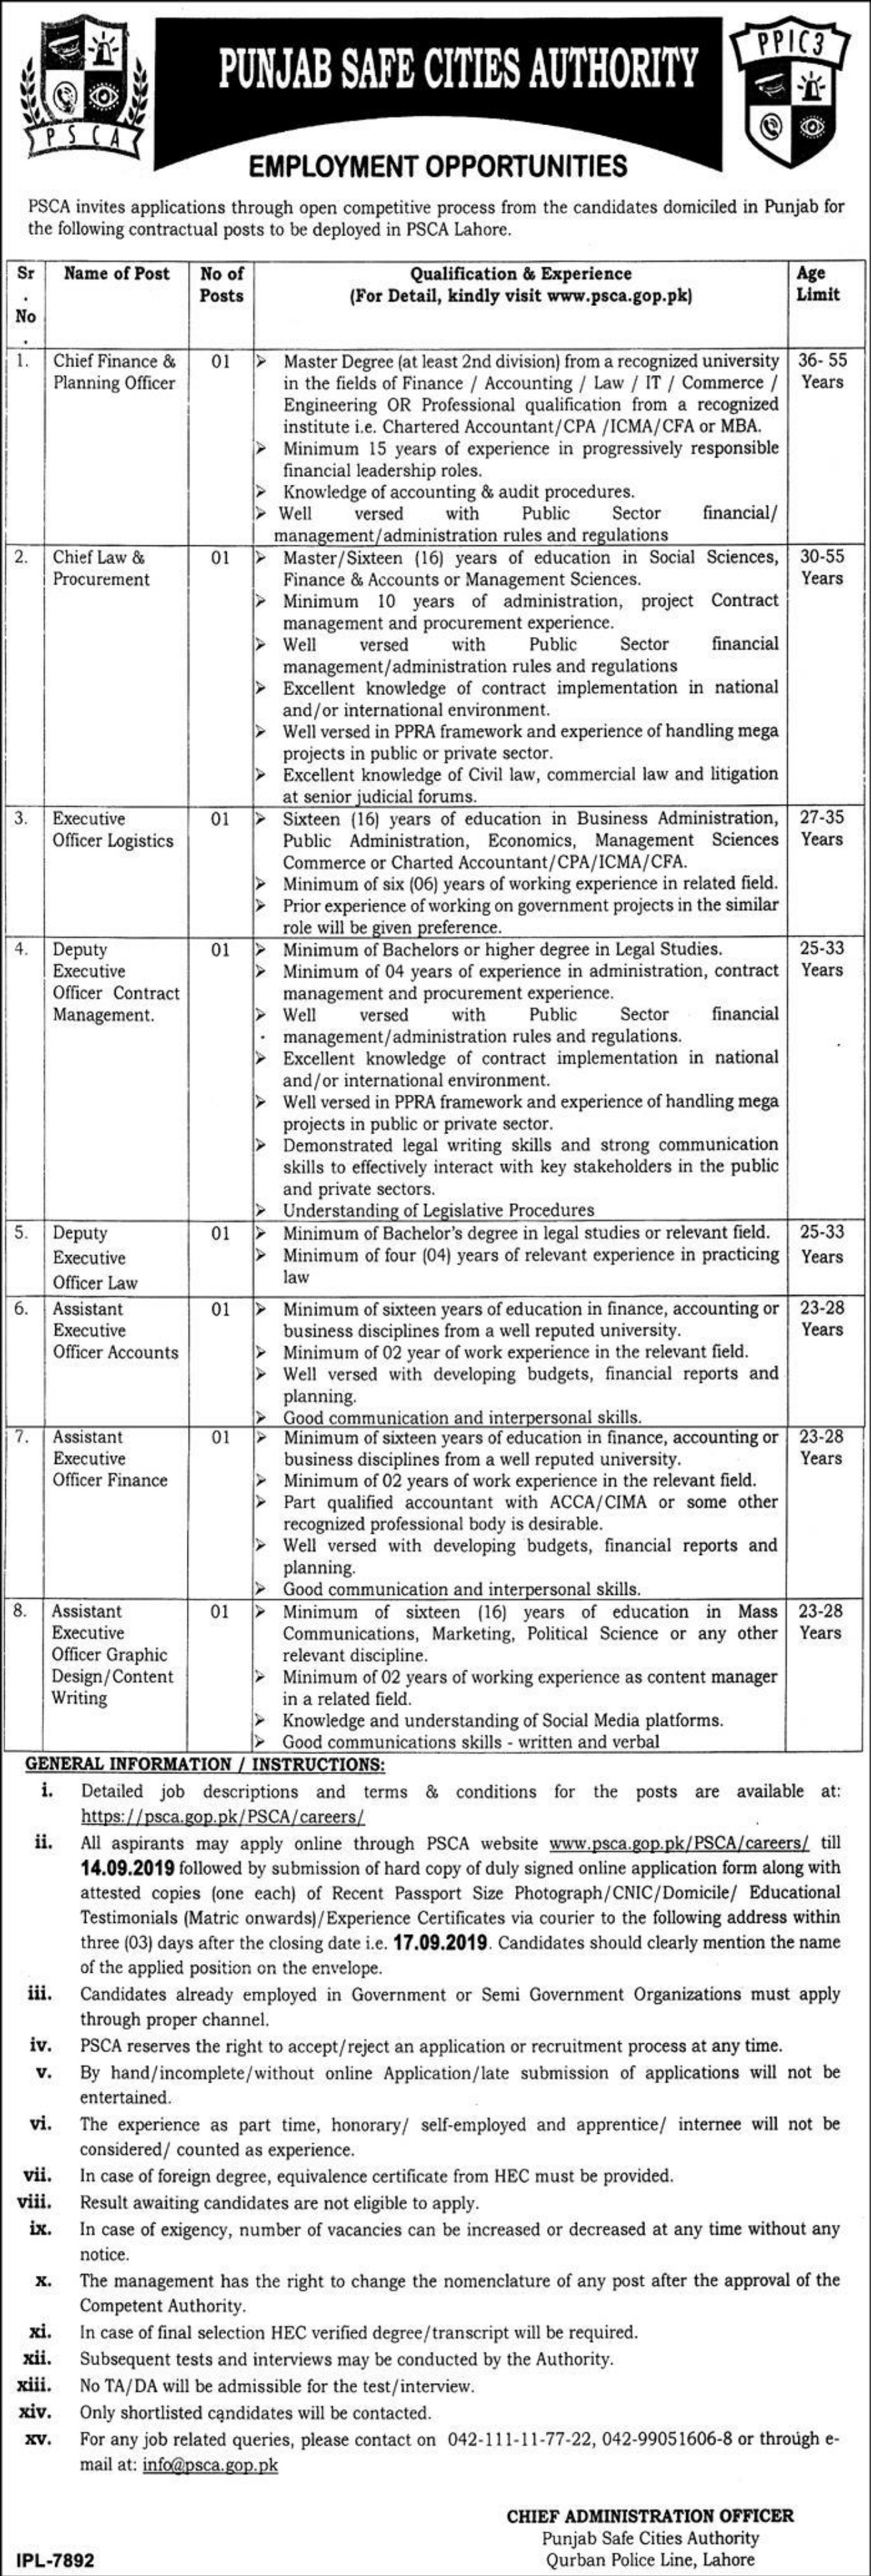 Punjab Safe Cities Authority PSCA Jobs 2019 Latest Apply Online